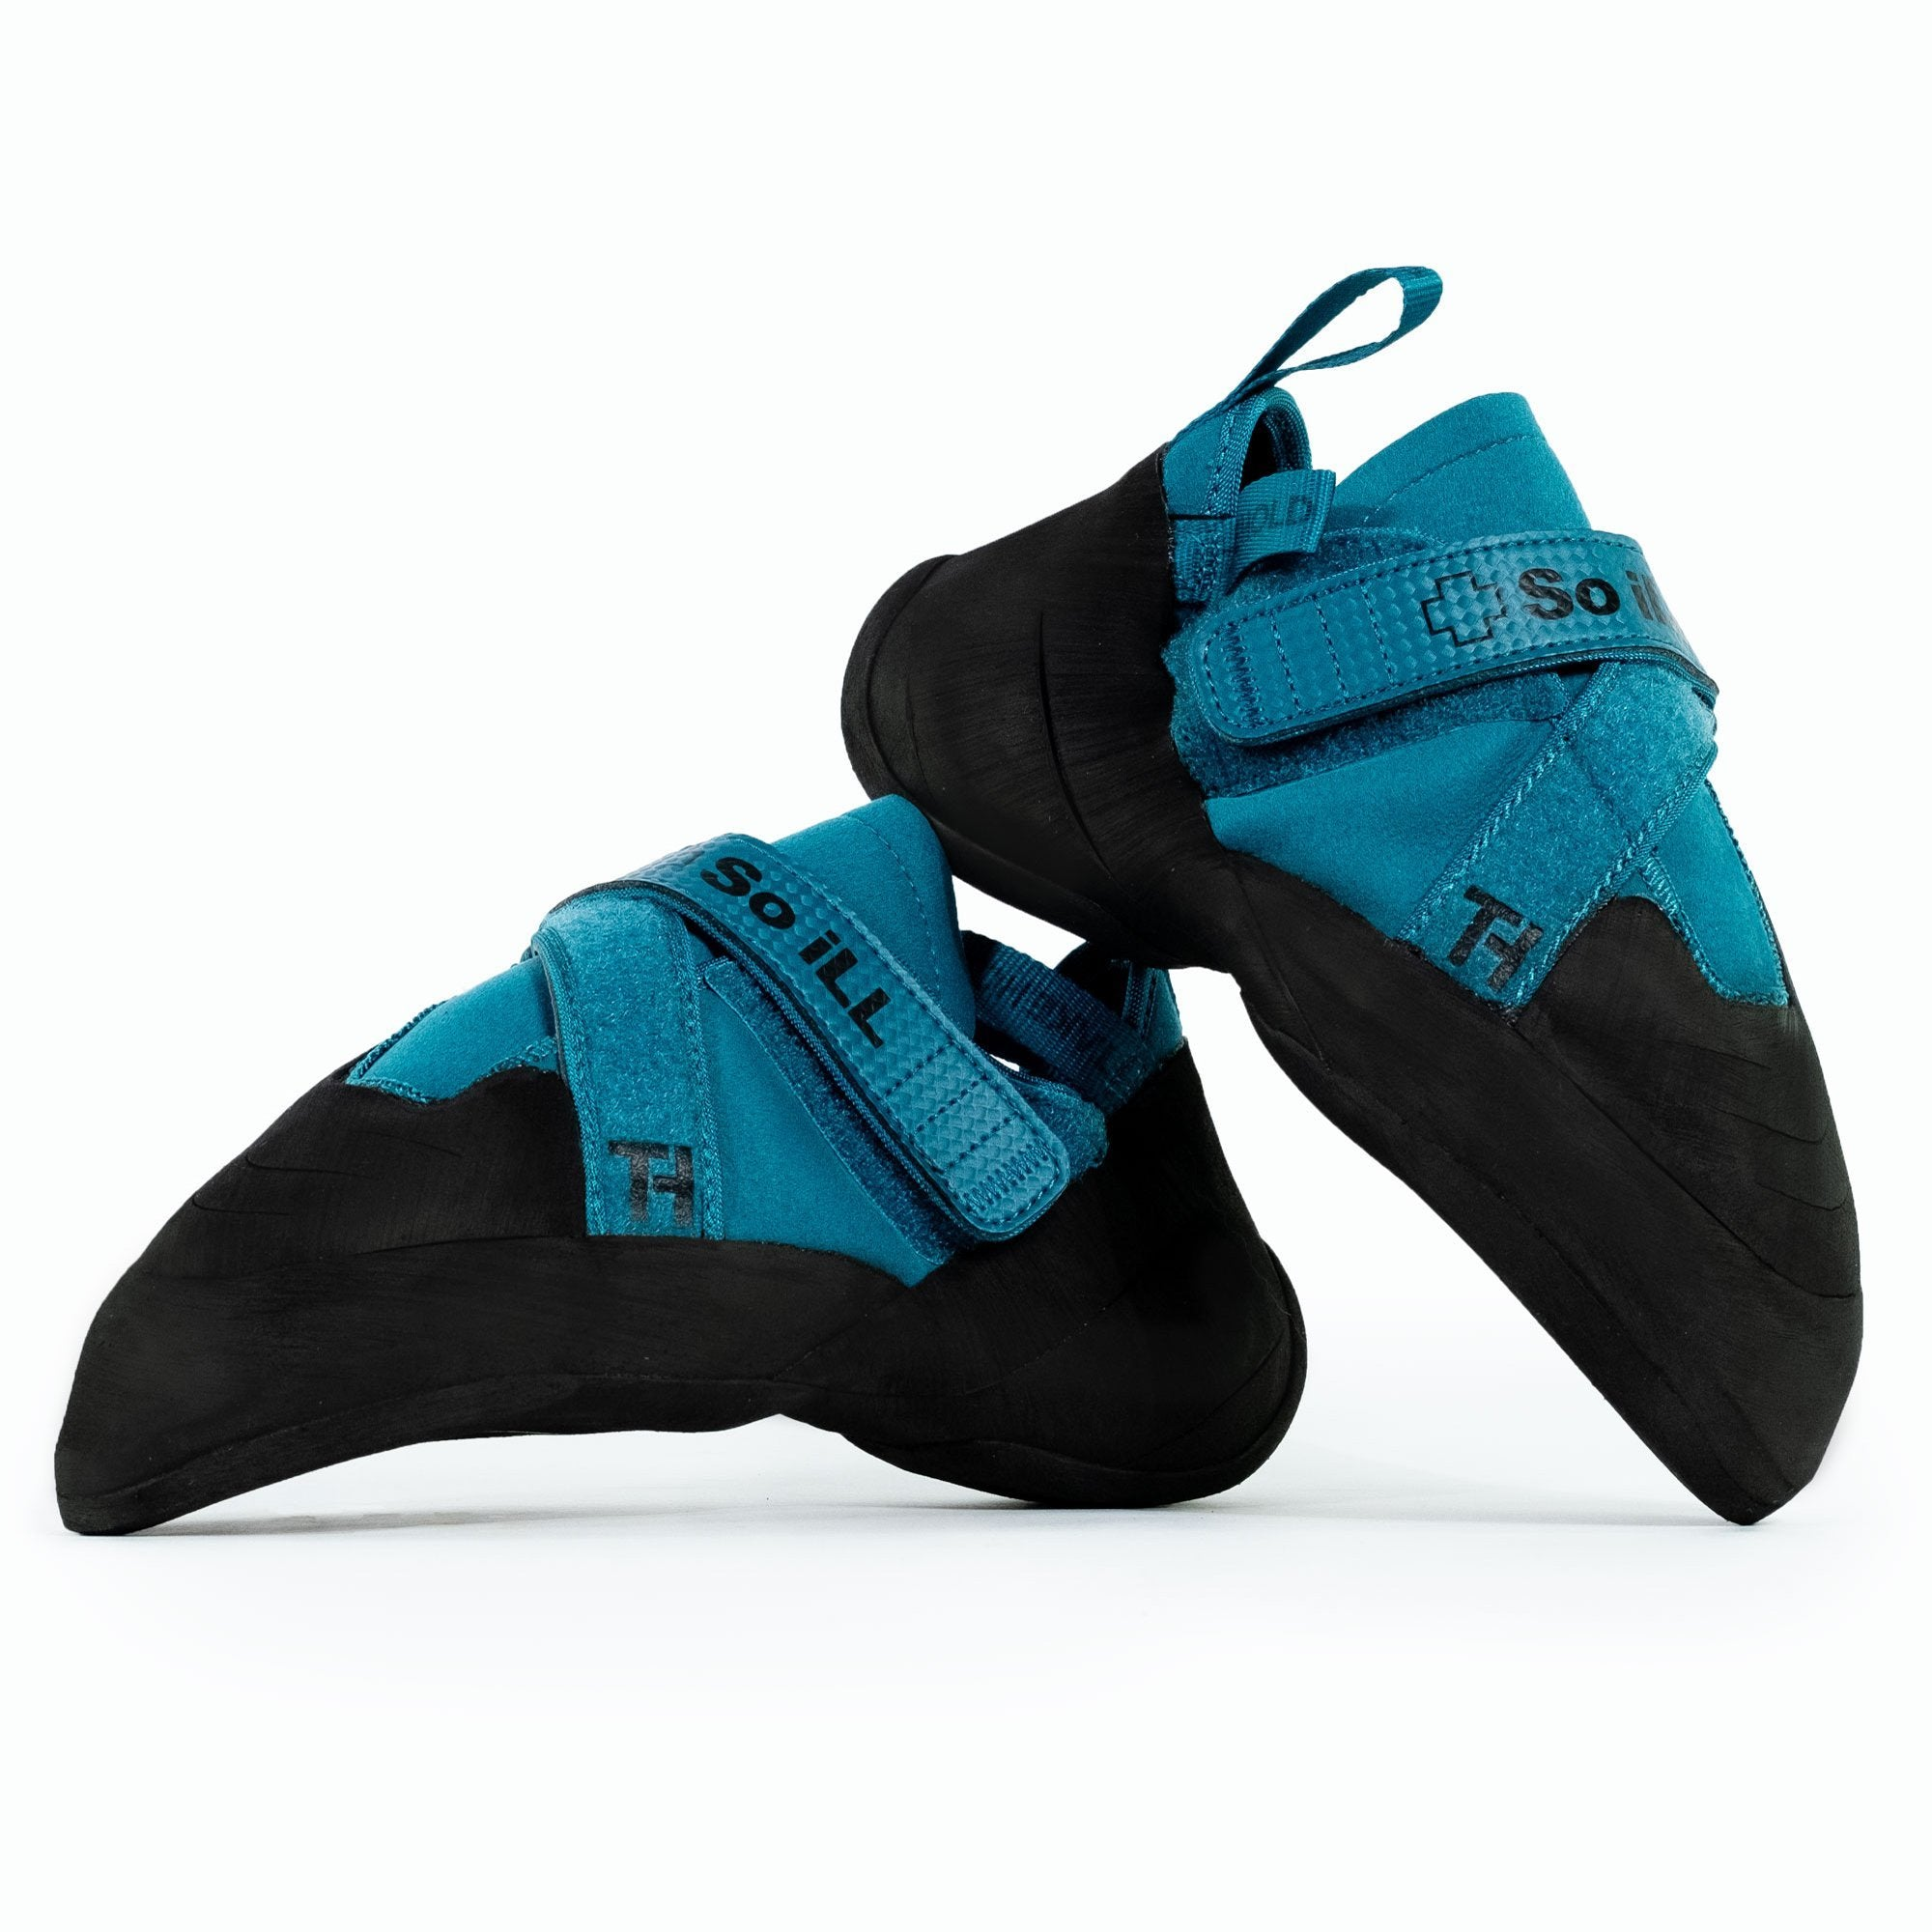 So iLL Free Range Pro Rock Climbing Shoe in Blue Spruce – Pair Side View